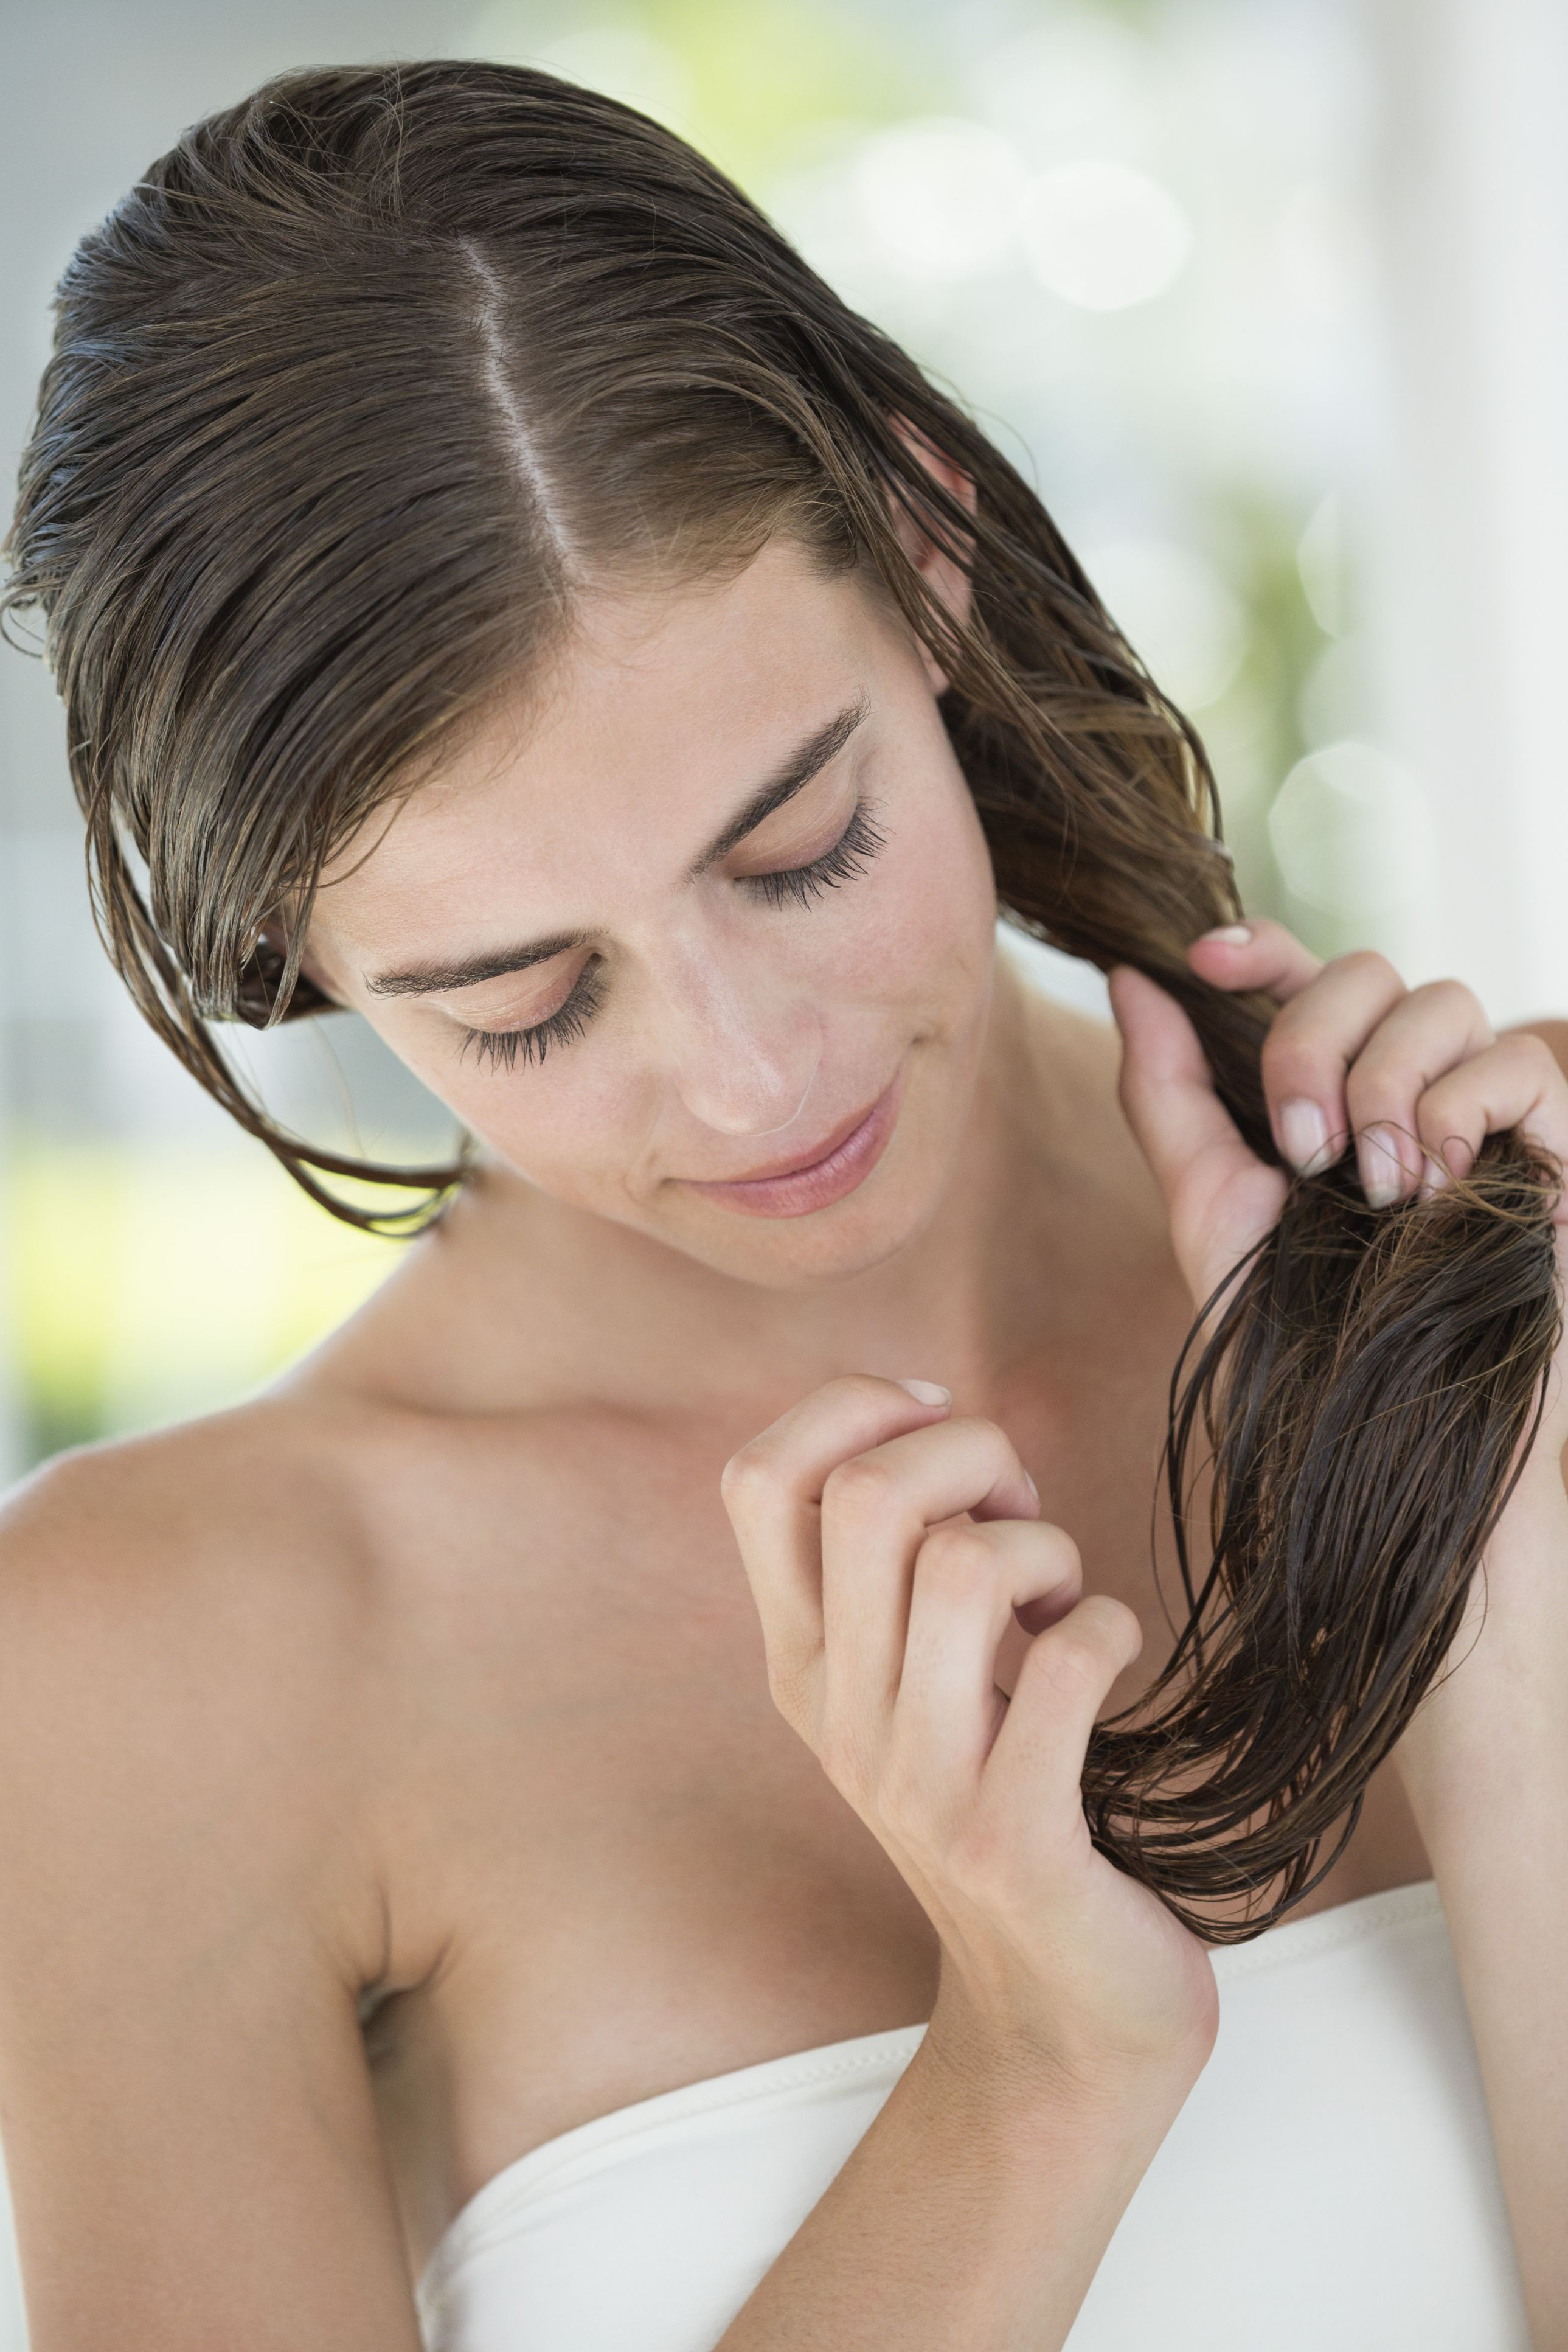 18 Flat Hair Fixes To Give Fine Hair More Body